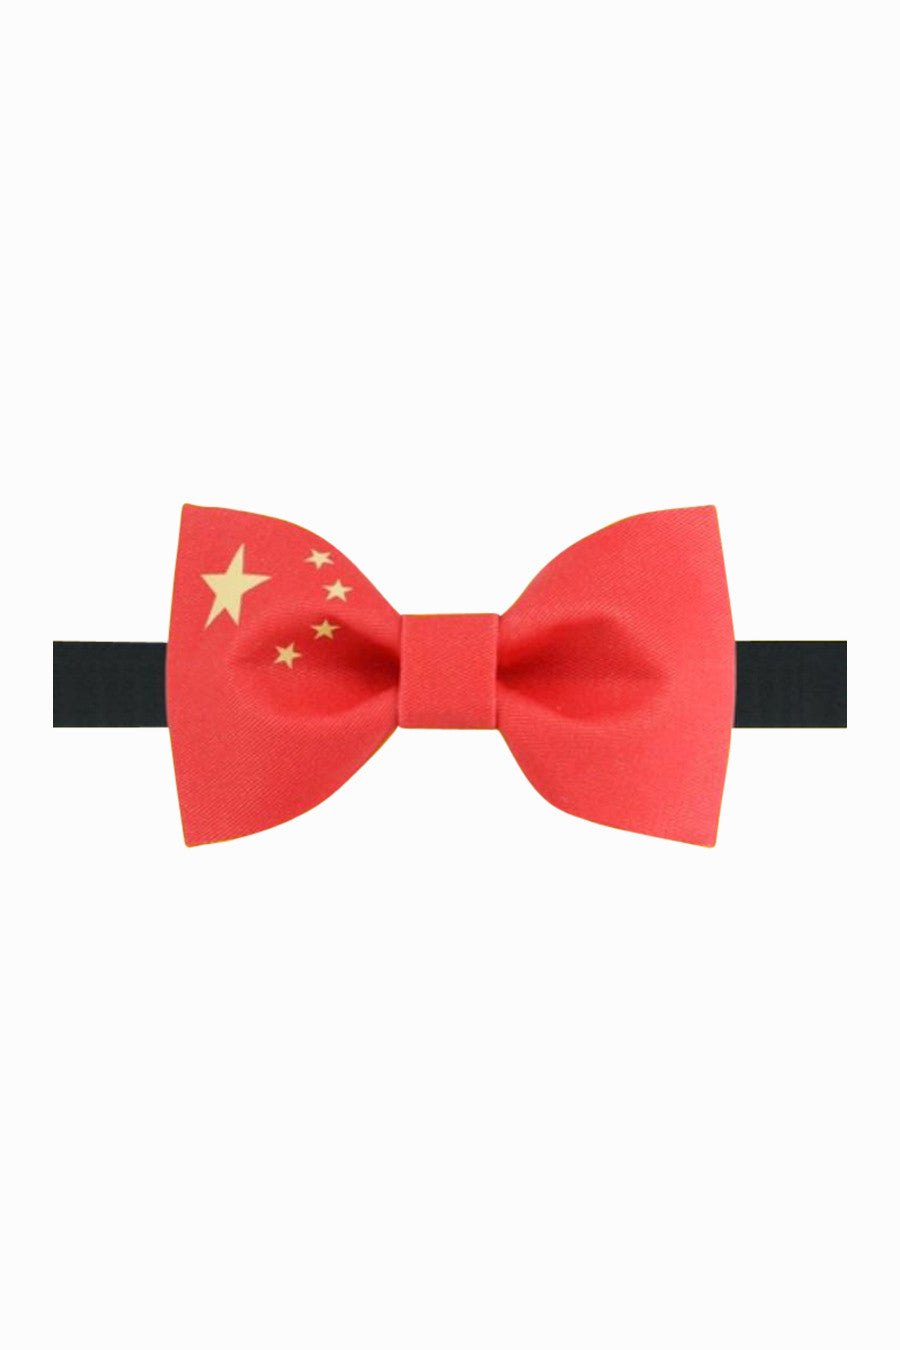 Chinese Flag Bow Tie